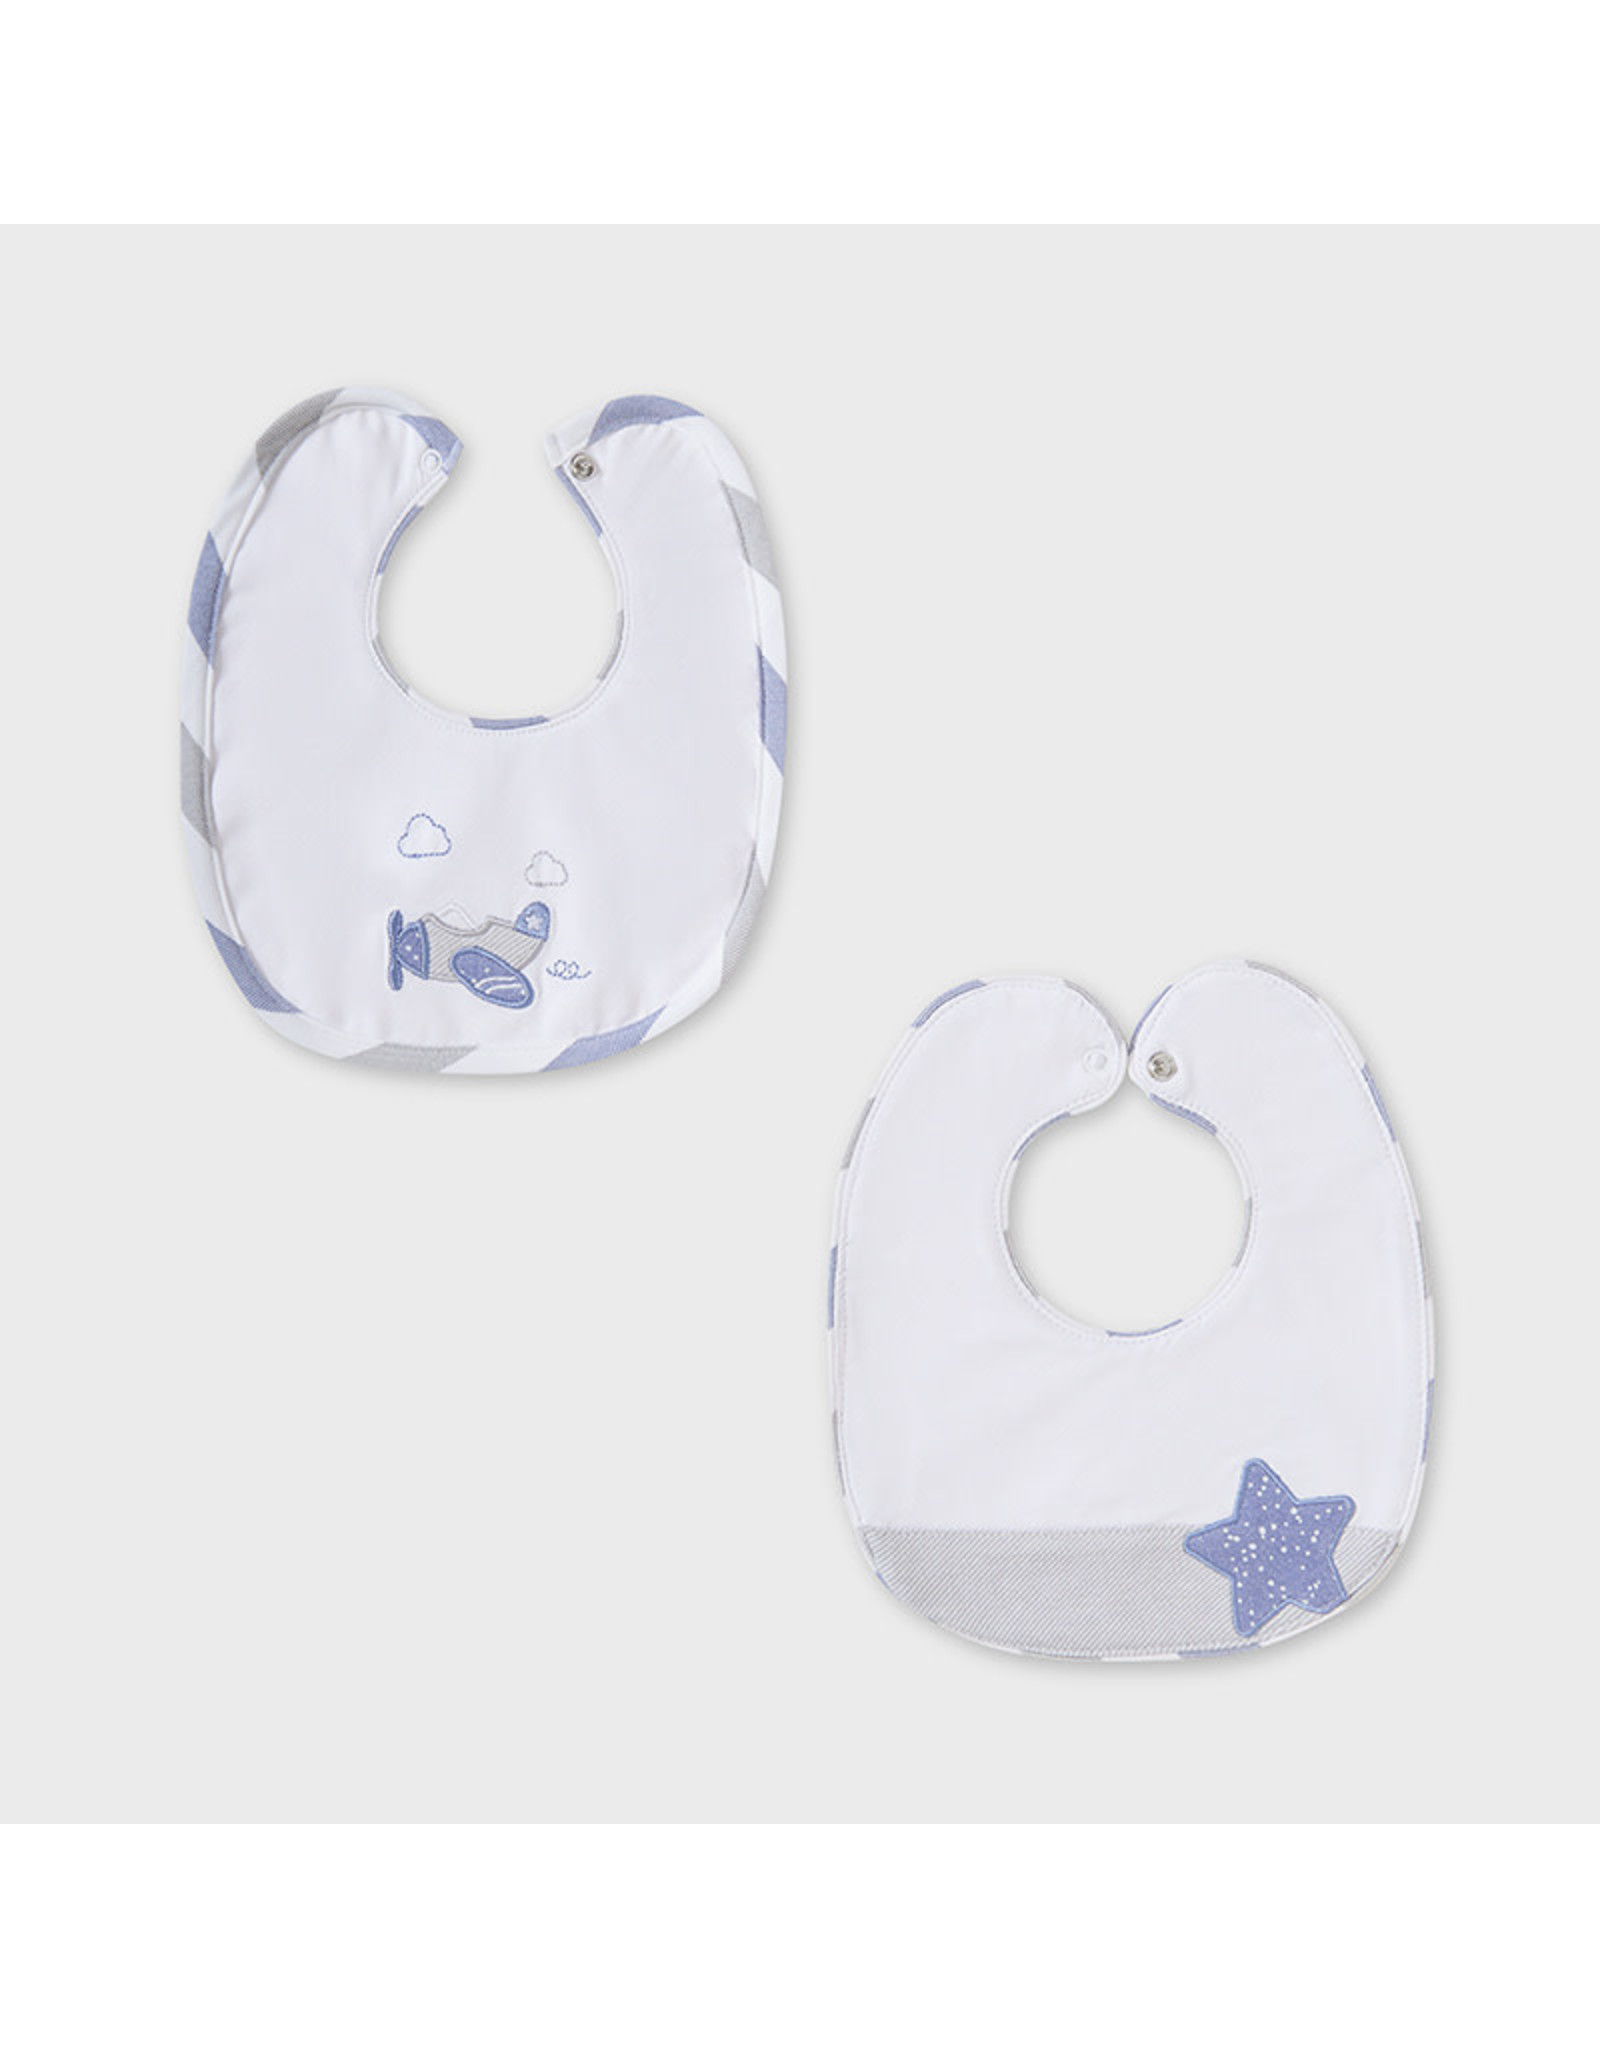 Mayoral 2 Bib Set - Lead